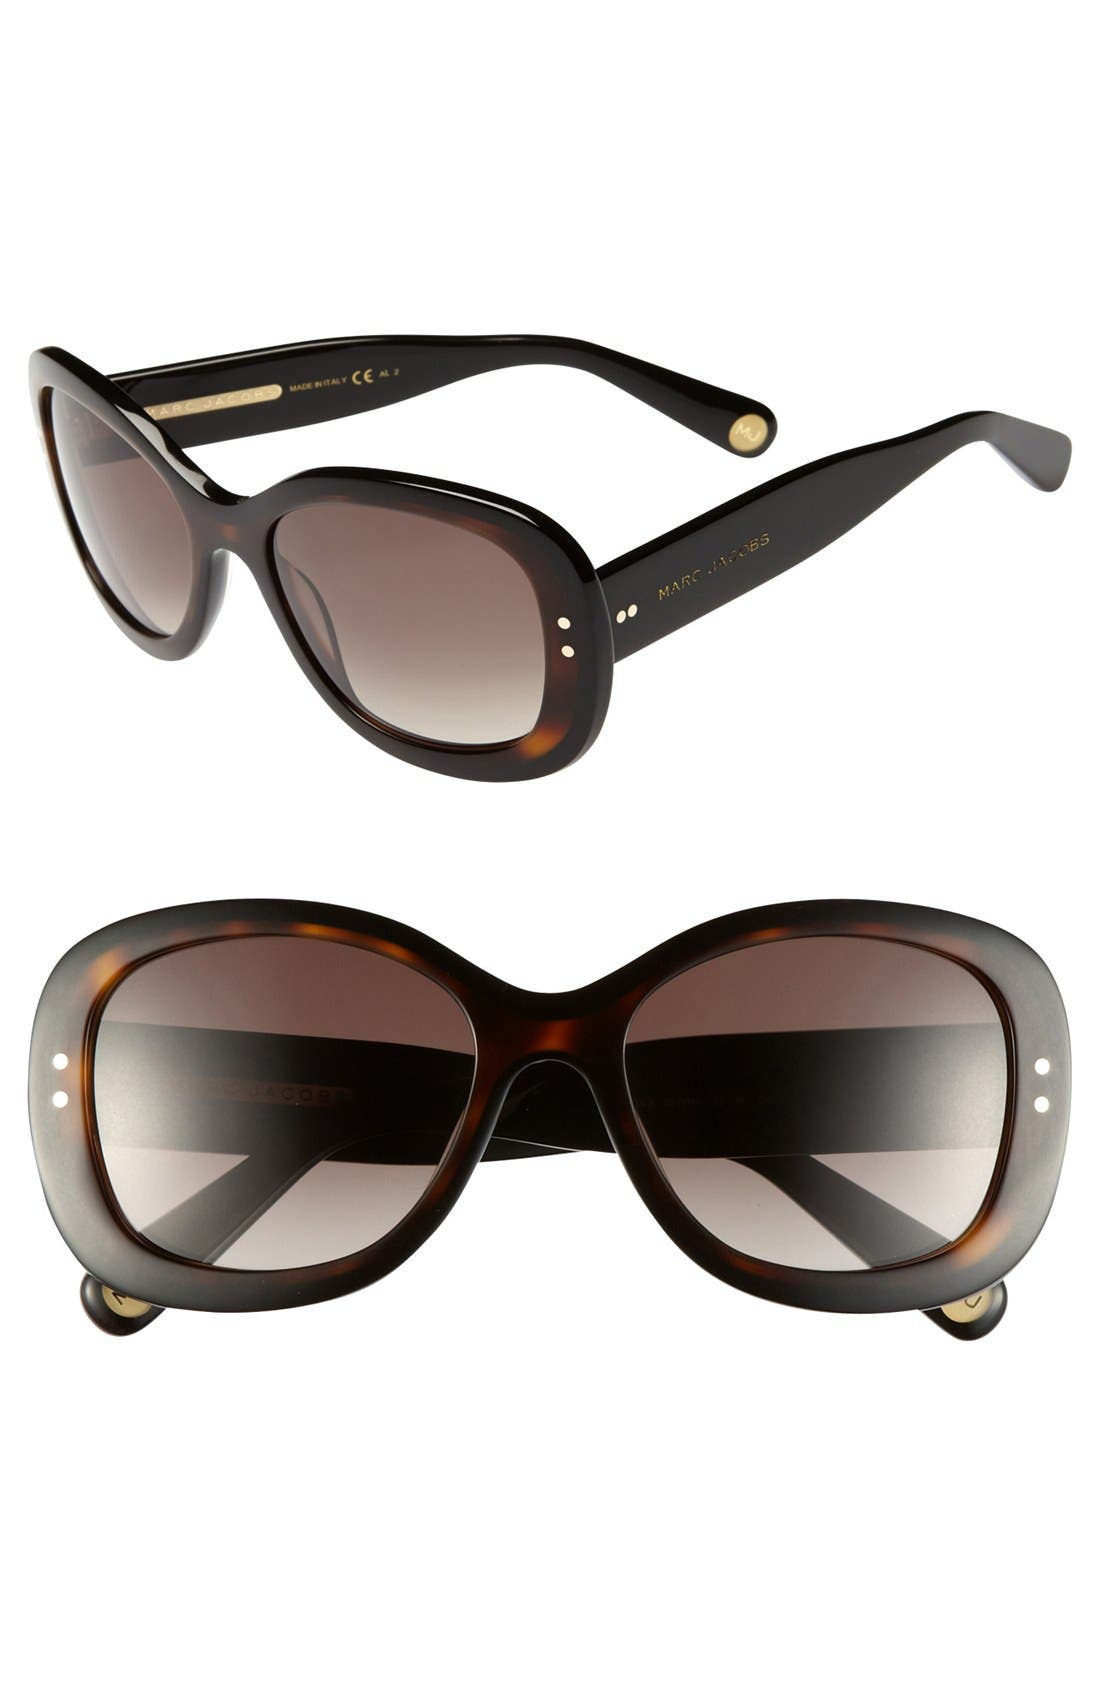 Alternate Image 1 Selected - MARC JACOBS 55mm Sunglasses